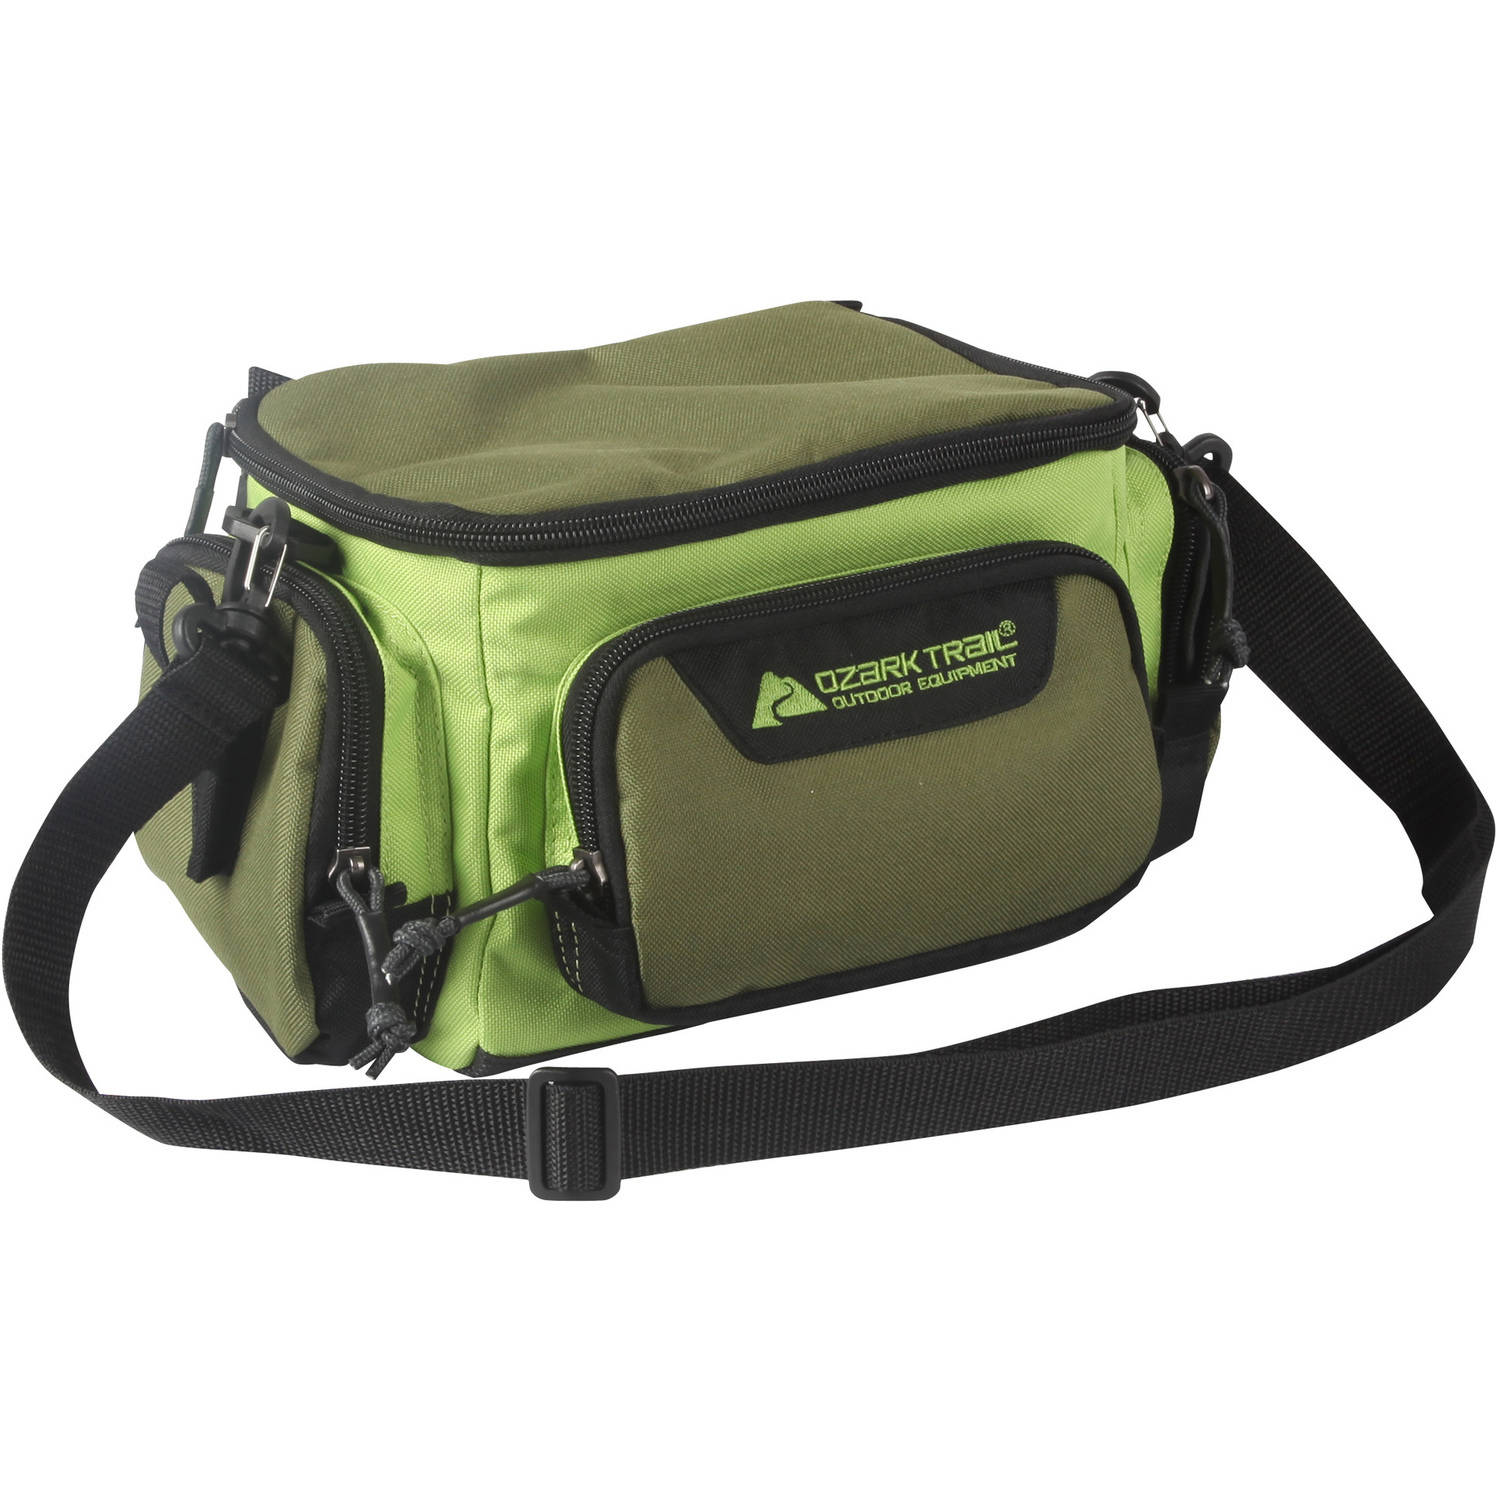 Ozark Trail Soft-Sided Tackle Bag, Green by WESTFIELD OUTDOOR INC